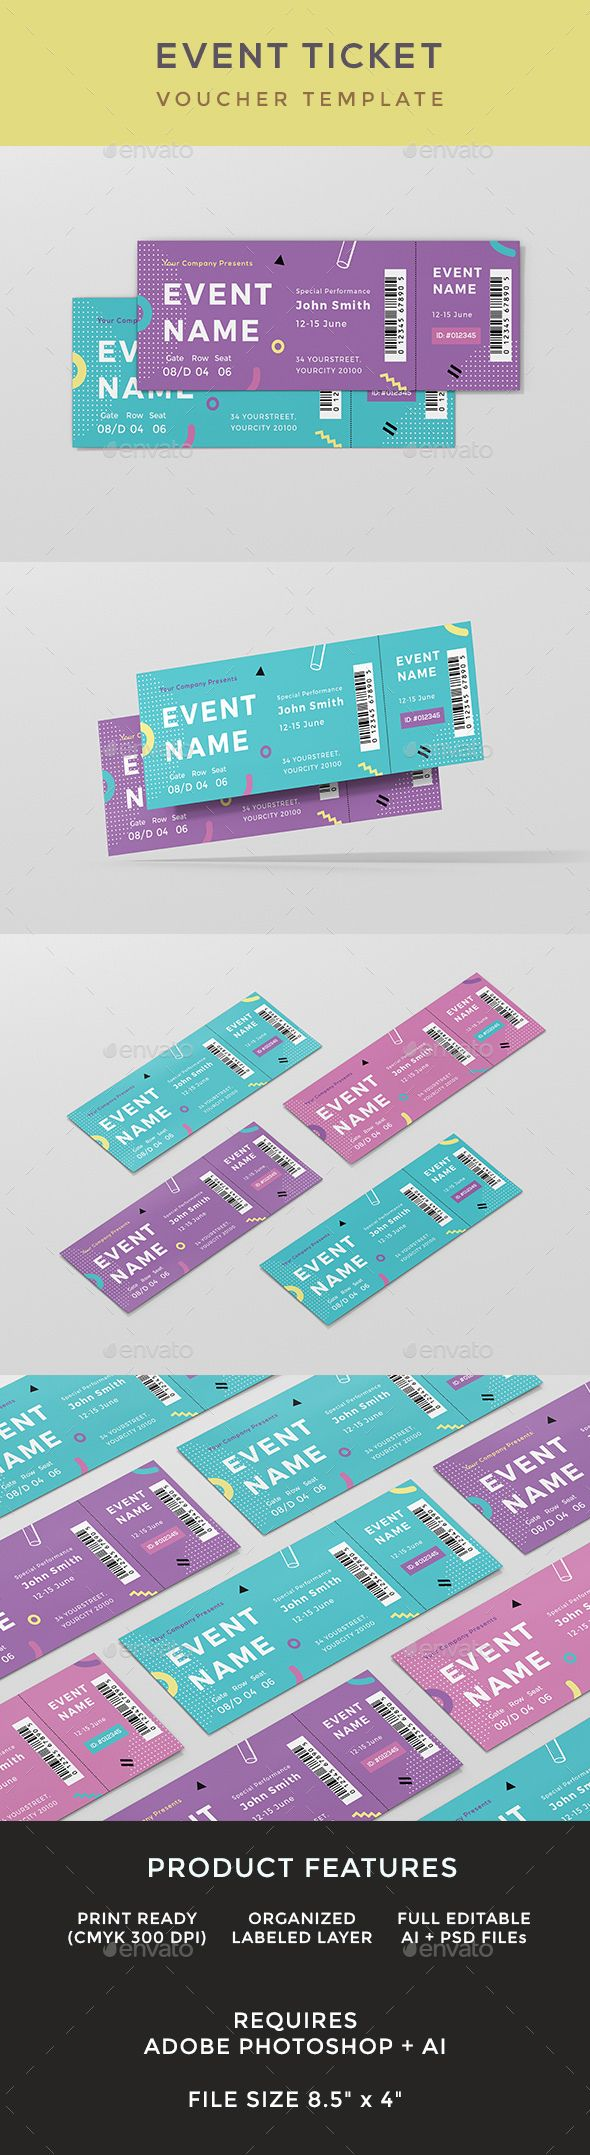 Best 25+ Event tickets ideas on Pinterest | Ticket design, Ticket ...